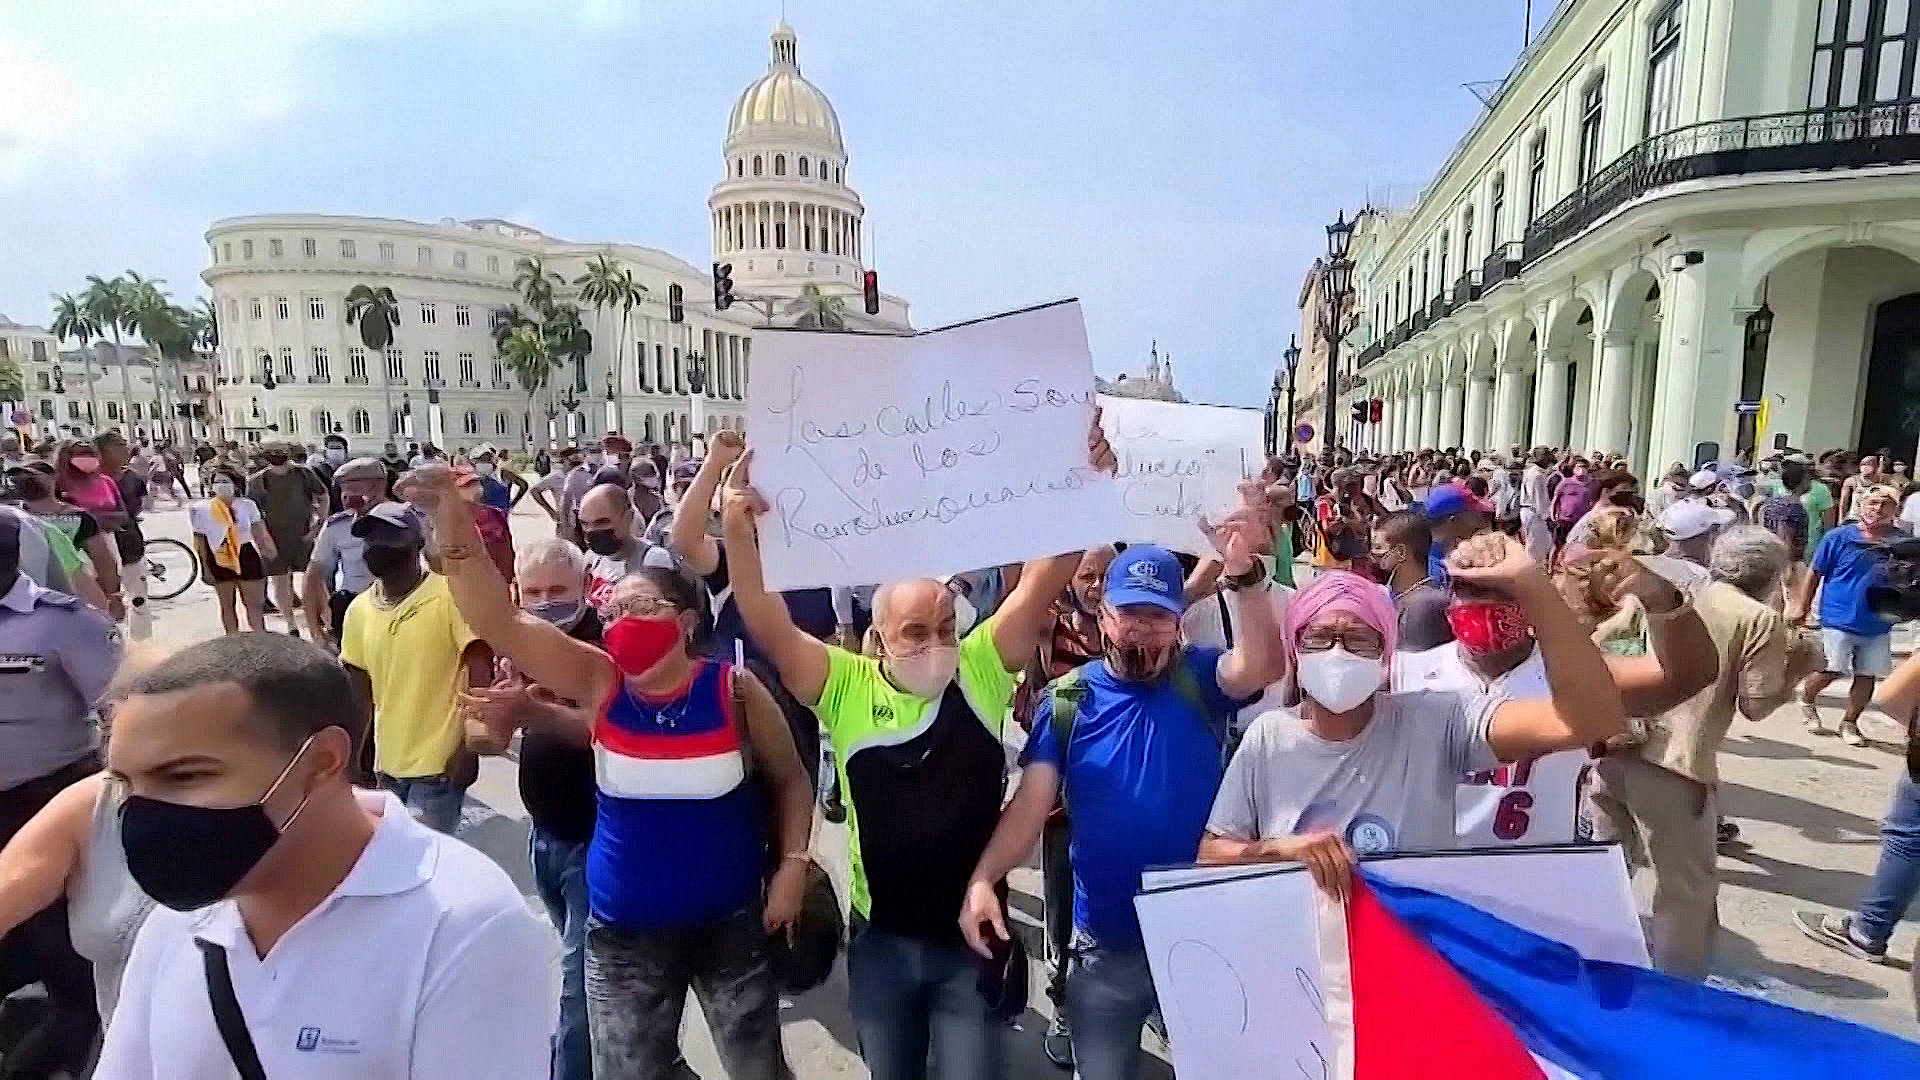 """Read more about the article """"We Just Want the Basics"""": Rare Protests in Cuba Amid Deep Economic Crisis, Ongoing U.S. Blockade"""